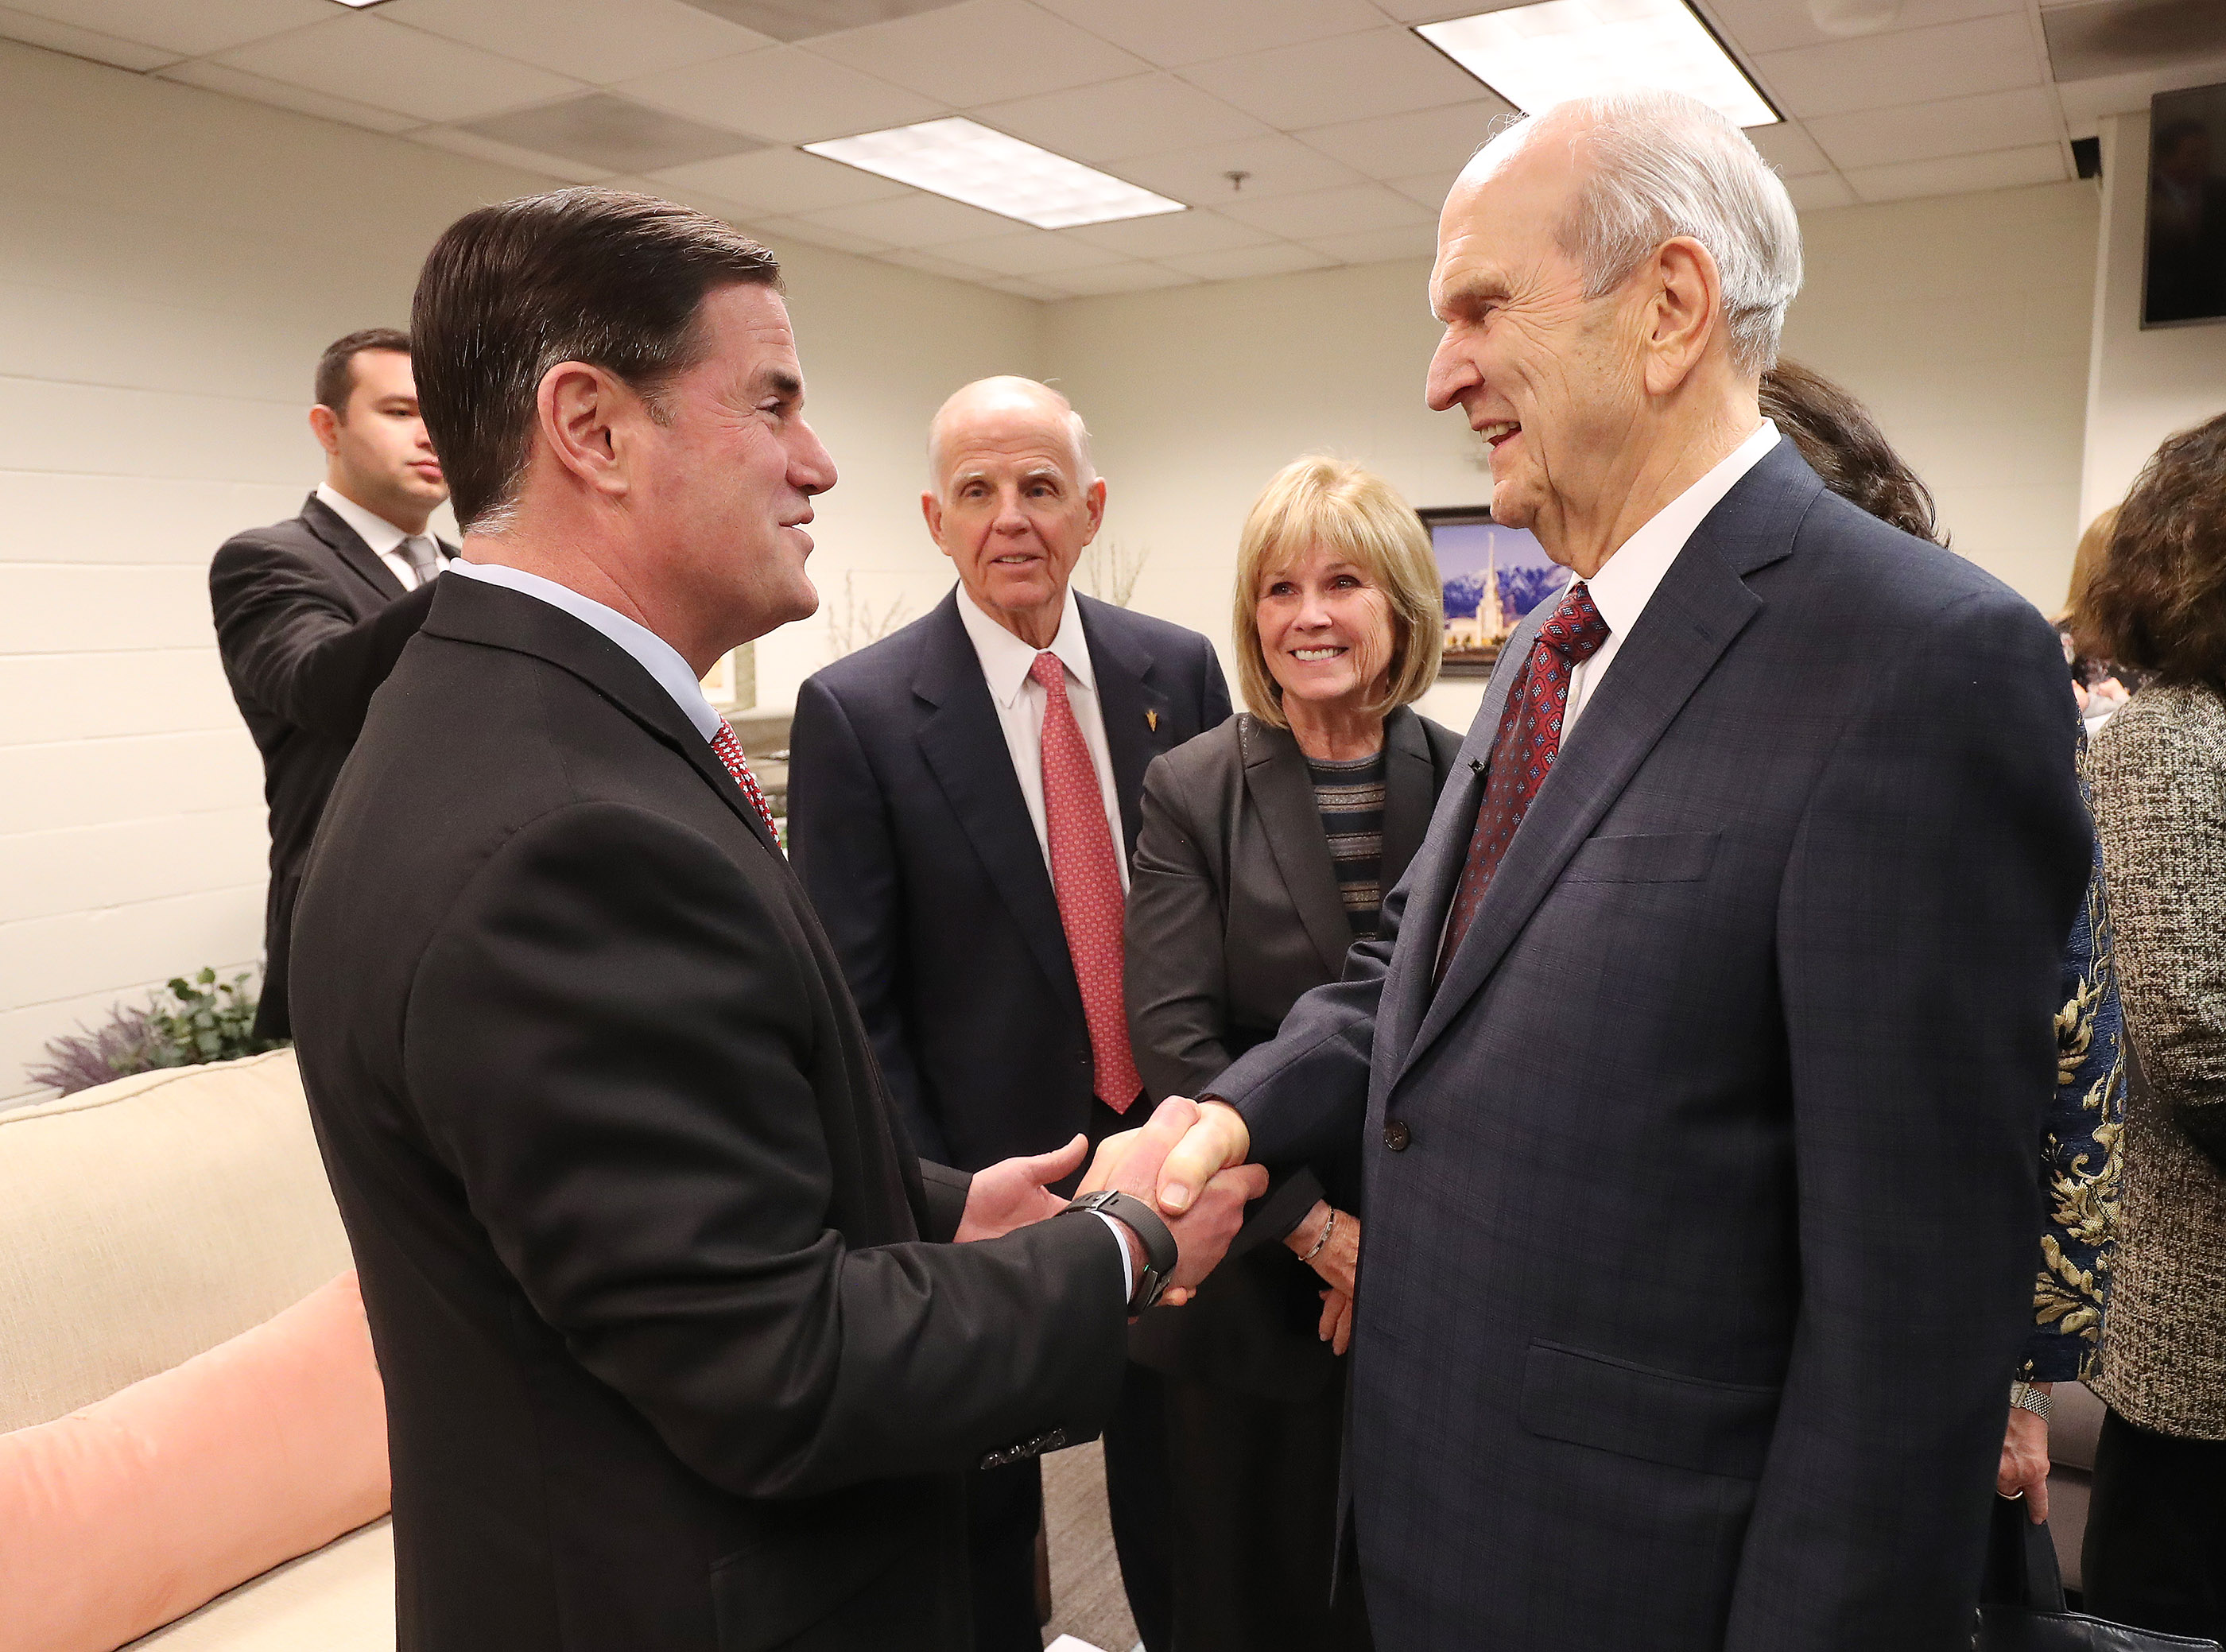 President Russell M. Nelson of The Church of Jesus Christ of Latter-day Saints, right, meets Arizona Gov. Doug Ducey prior to a devotional at the State Farm Stadium in Phoenix on Sunday, Feb. 10, 2019.